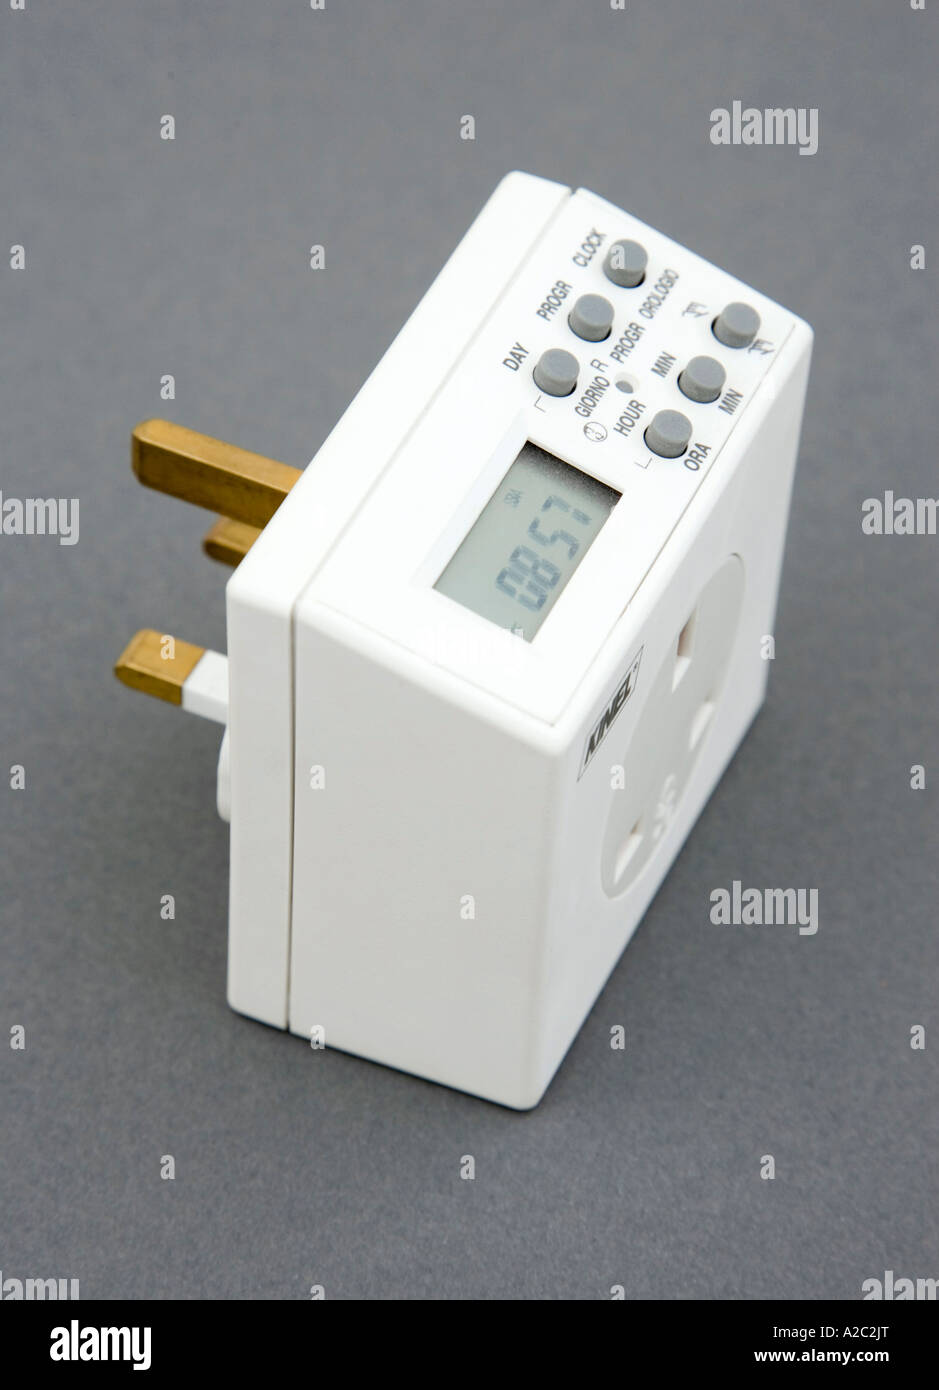 Socket Timer Stock Photos Images Alamy Circuit Breaker With 240 Volt Mains Power Digital Image